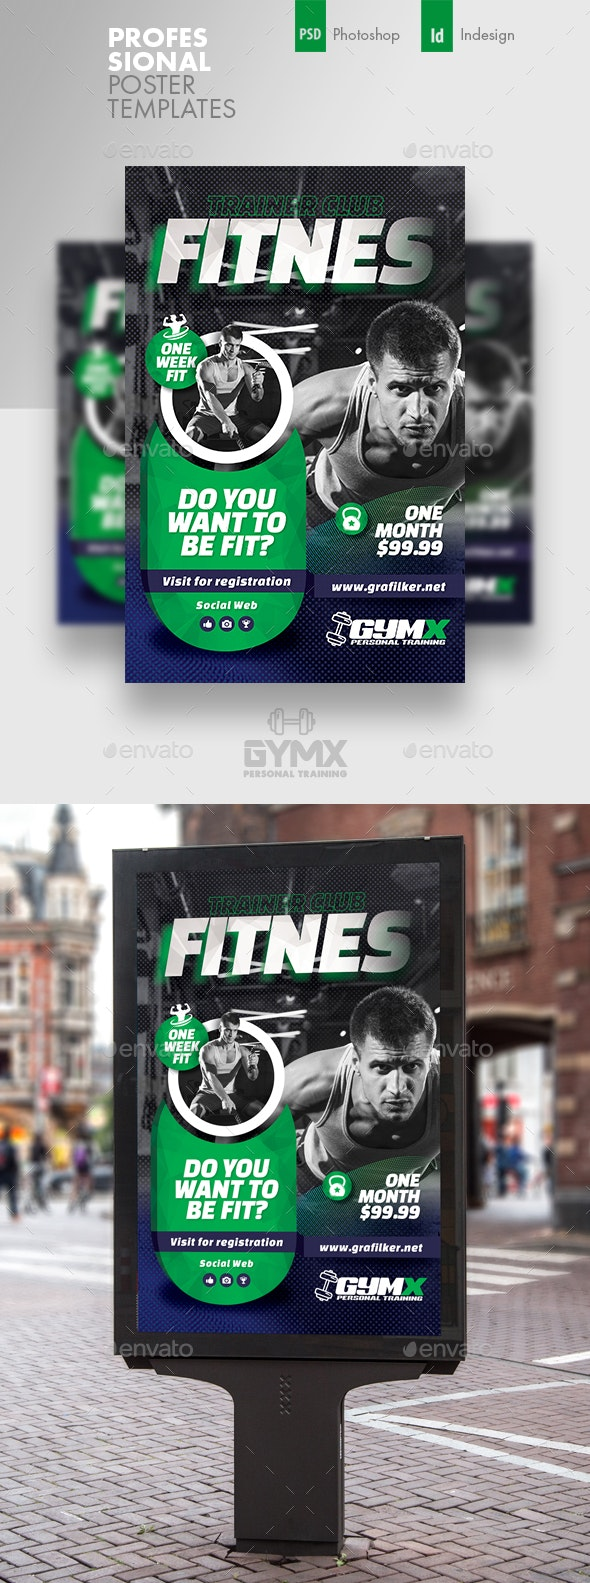 Fitness Trainer Poster Templates - Signage Print Templates